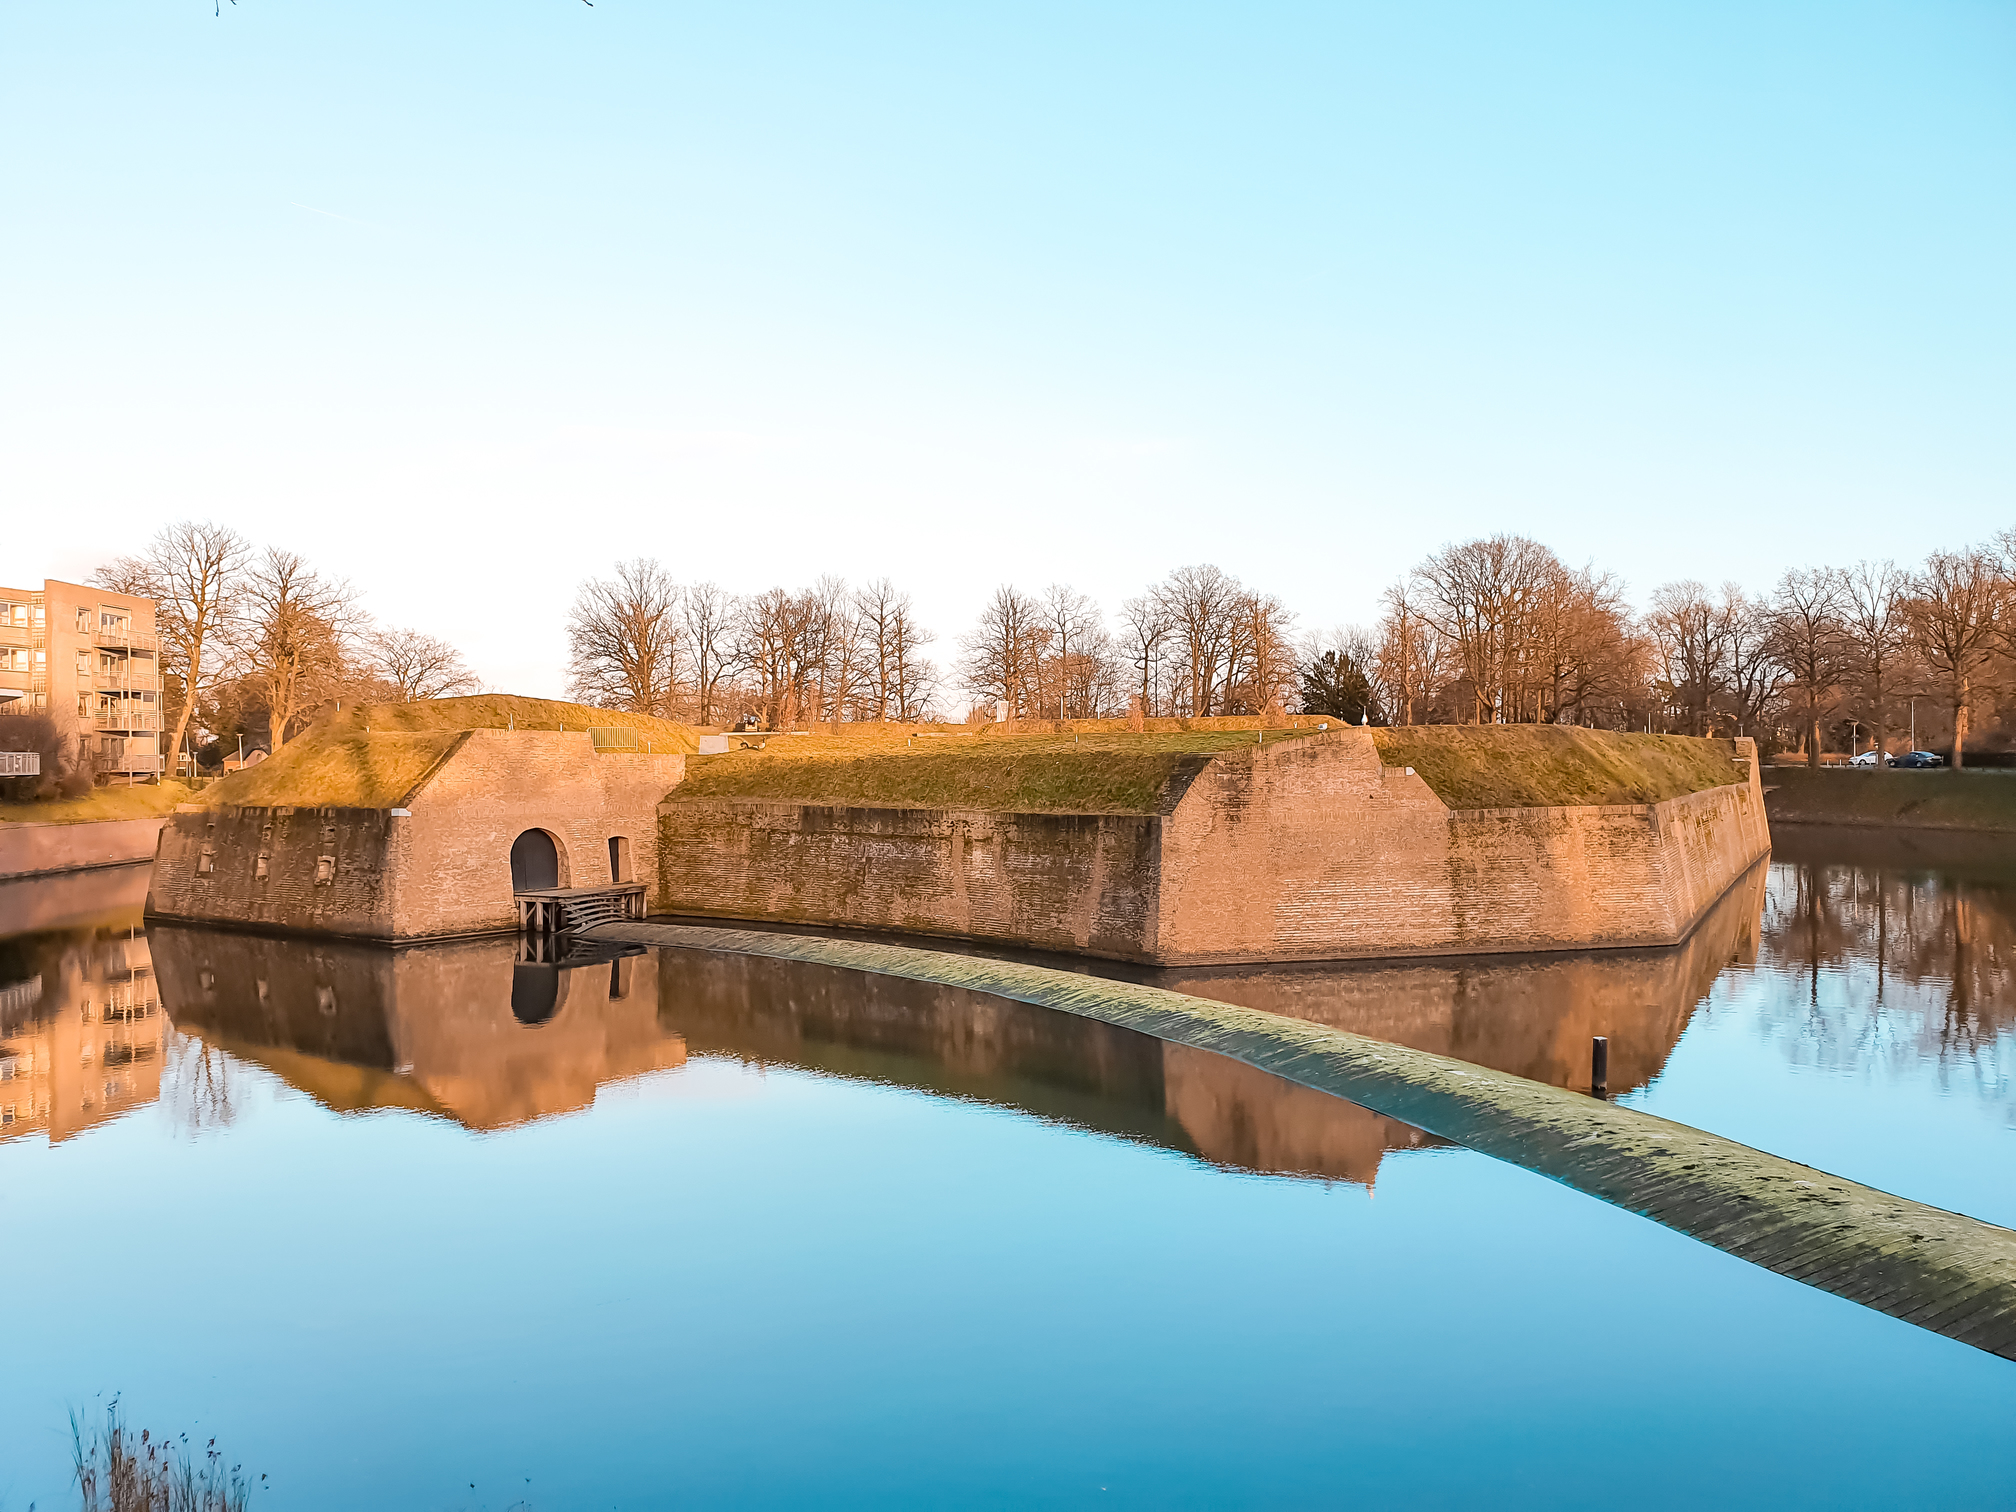 Ravelijn op den Zoom is part of the fortification of the city. Things to do and what to see when traveling to Bergen op Zoom. Perfect for a day trip or staying the entire weekend. Travel the Netherlands and find charming Dutch towns. #discover #europe #vacation